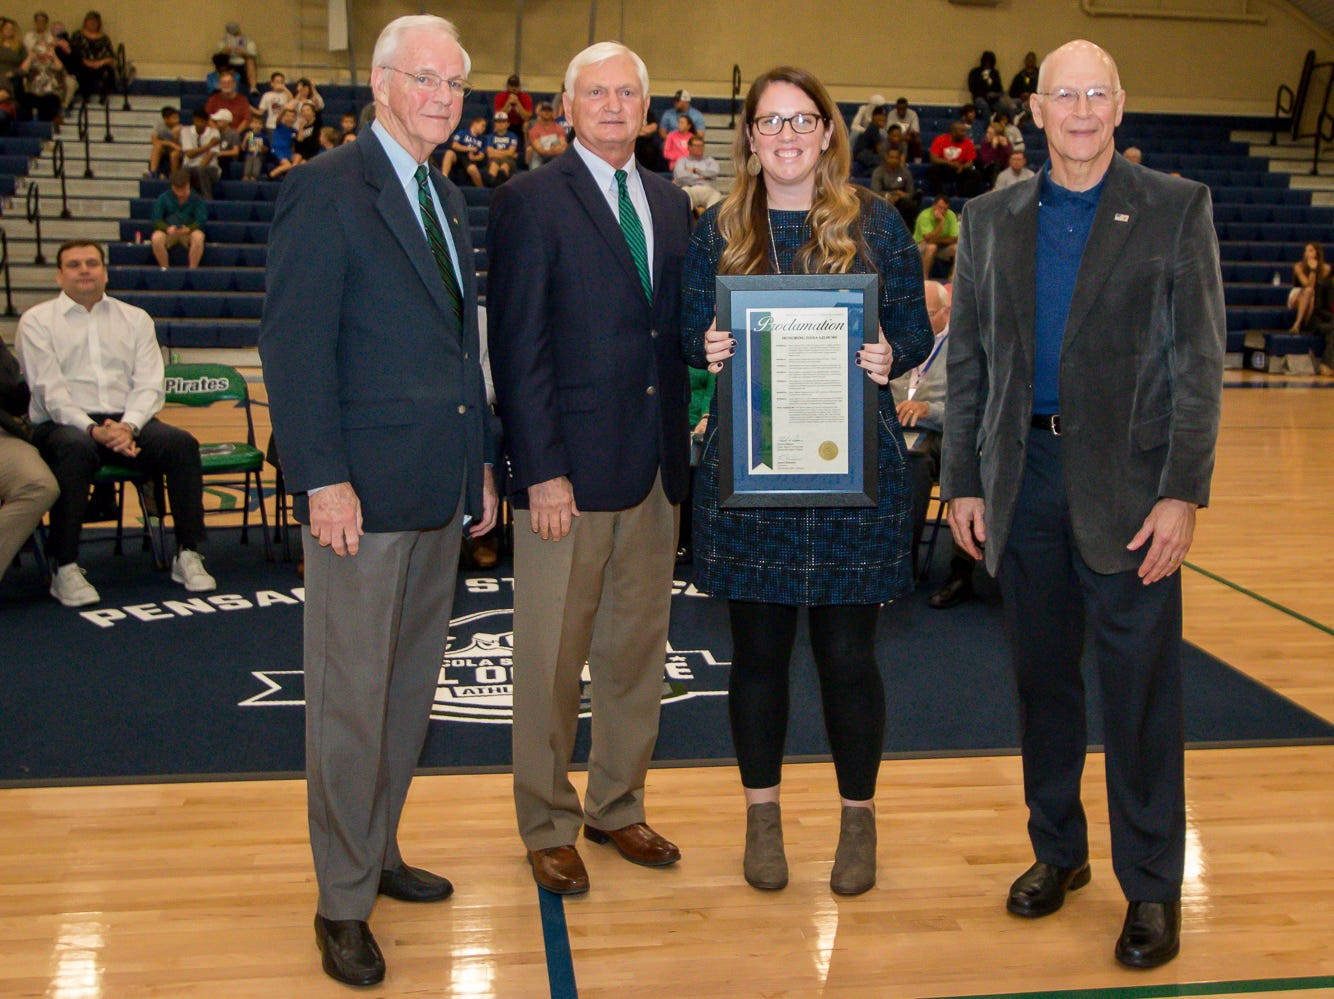 Dana Gilmore, second from right, is honored during Pensacola State College's inaugural Athletics Hall of Fame induction ceremony on Saturday, February 16, 2019, in the Hartsell Arena on the main campus. She is the college's most-decorated female athlete, including being named an All-Conference, All-State, and All-American athlete multiple times in both softball and volleyball. She currently is an assistant softball coach at Tate High School.